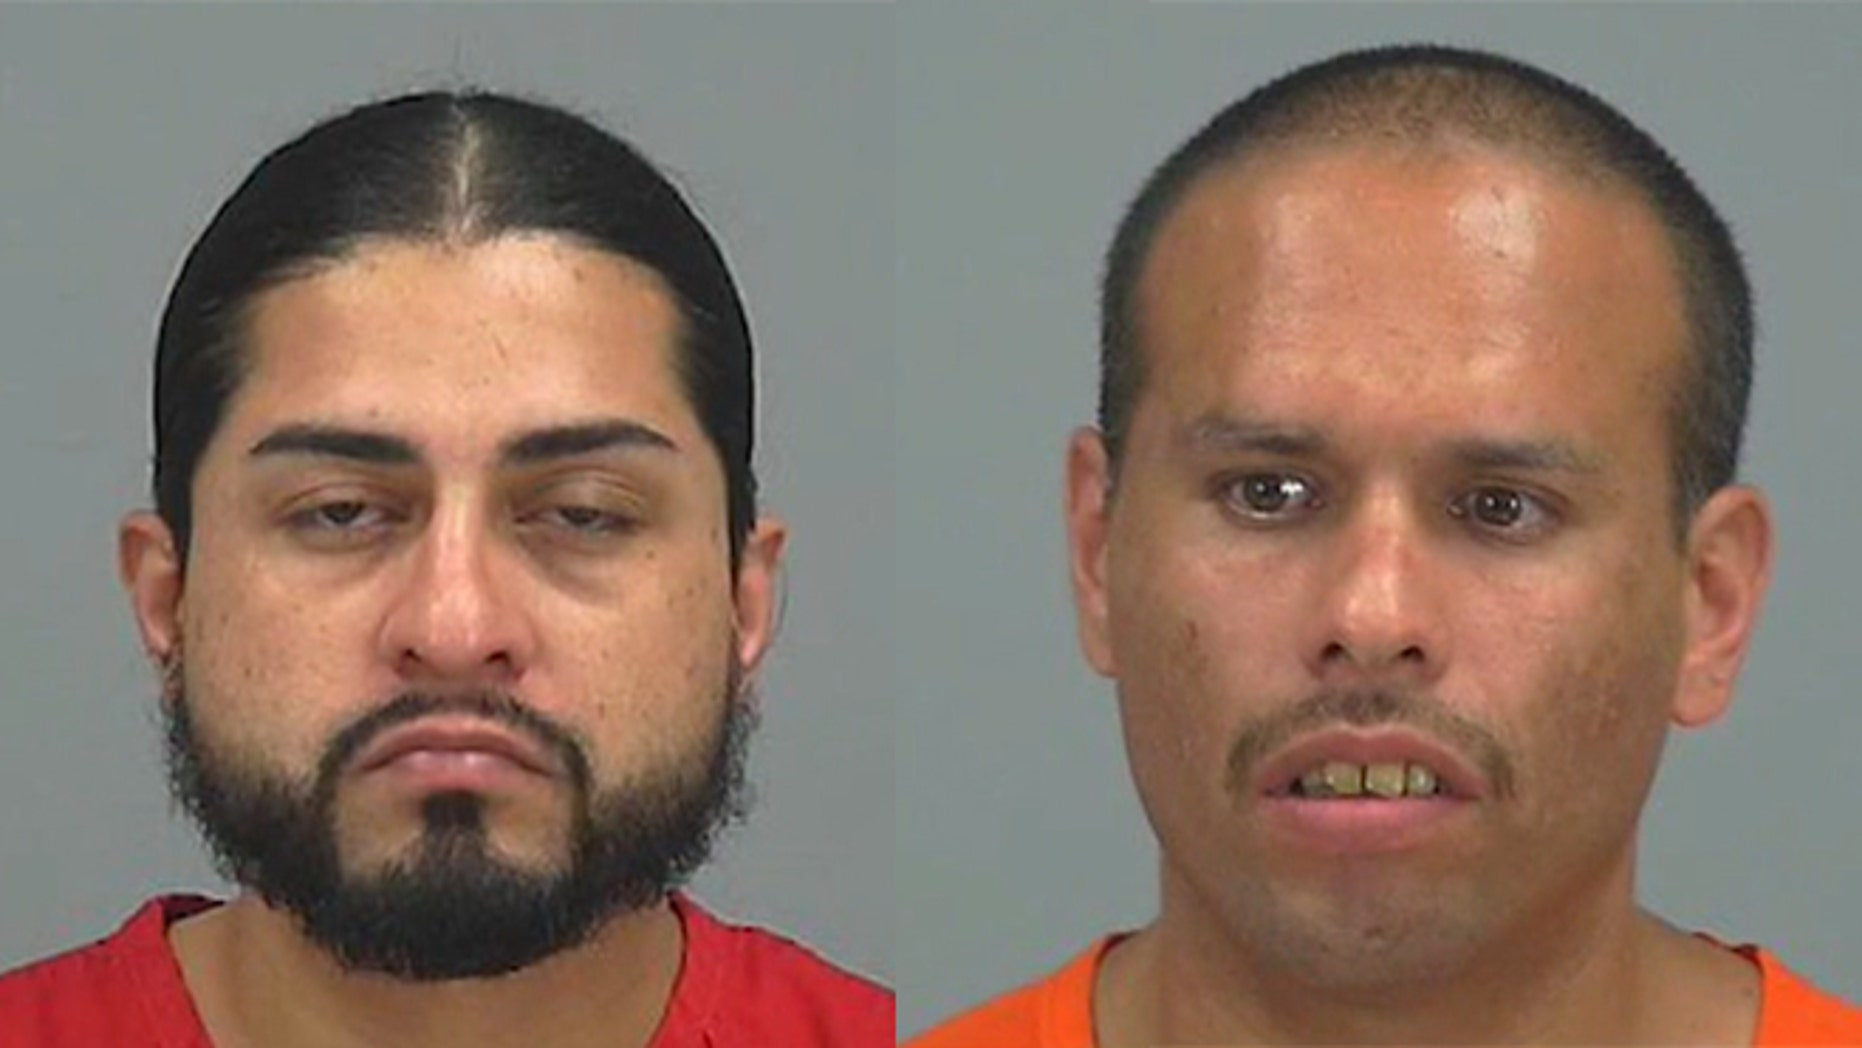 Ismael Martinez (left) and Fabian Mendivil. (Photos: Pinal County Sheriff's Office)